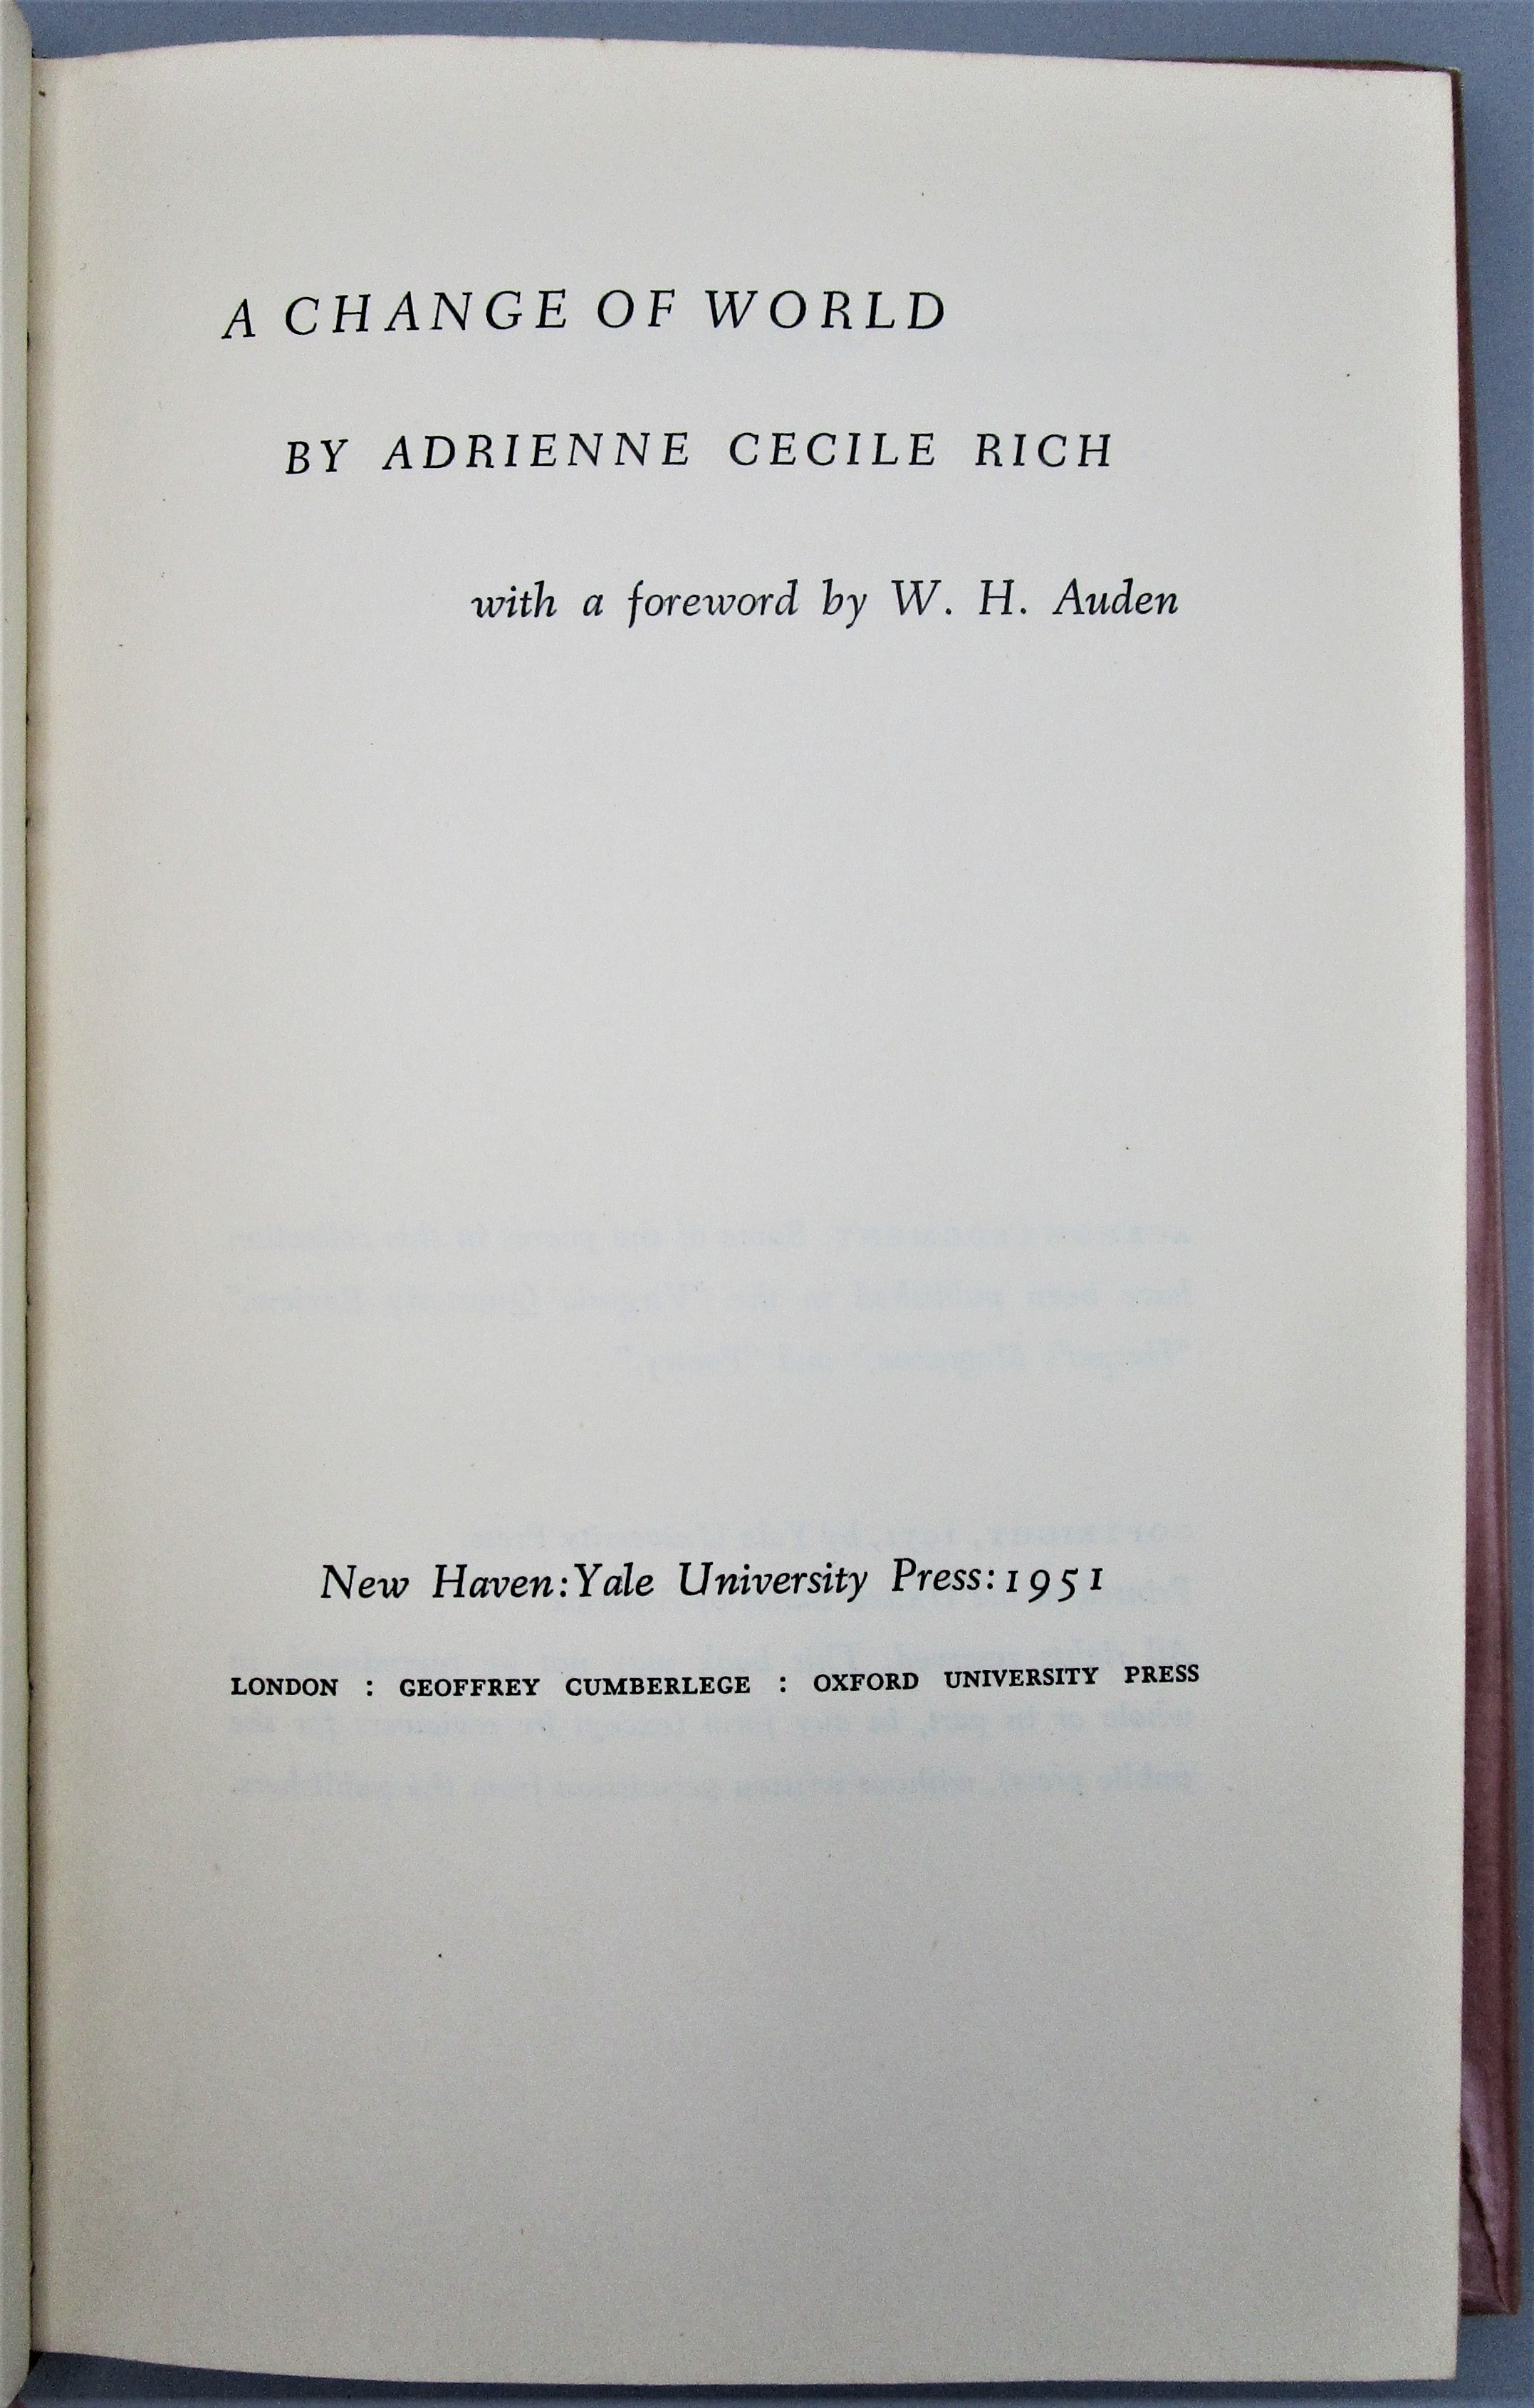 A CHANGE OF WORLD, by Adrienne Cecile Rich - 1951 [1st Ed]